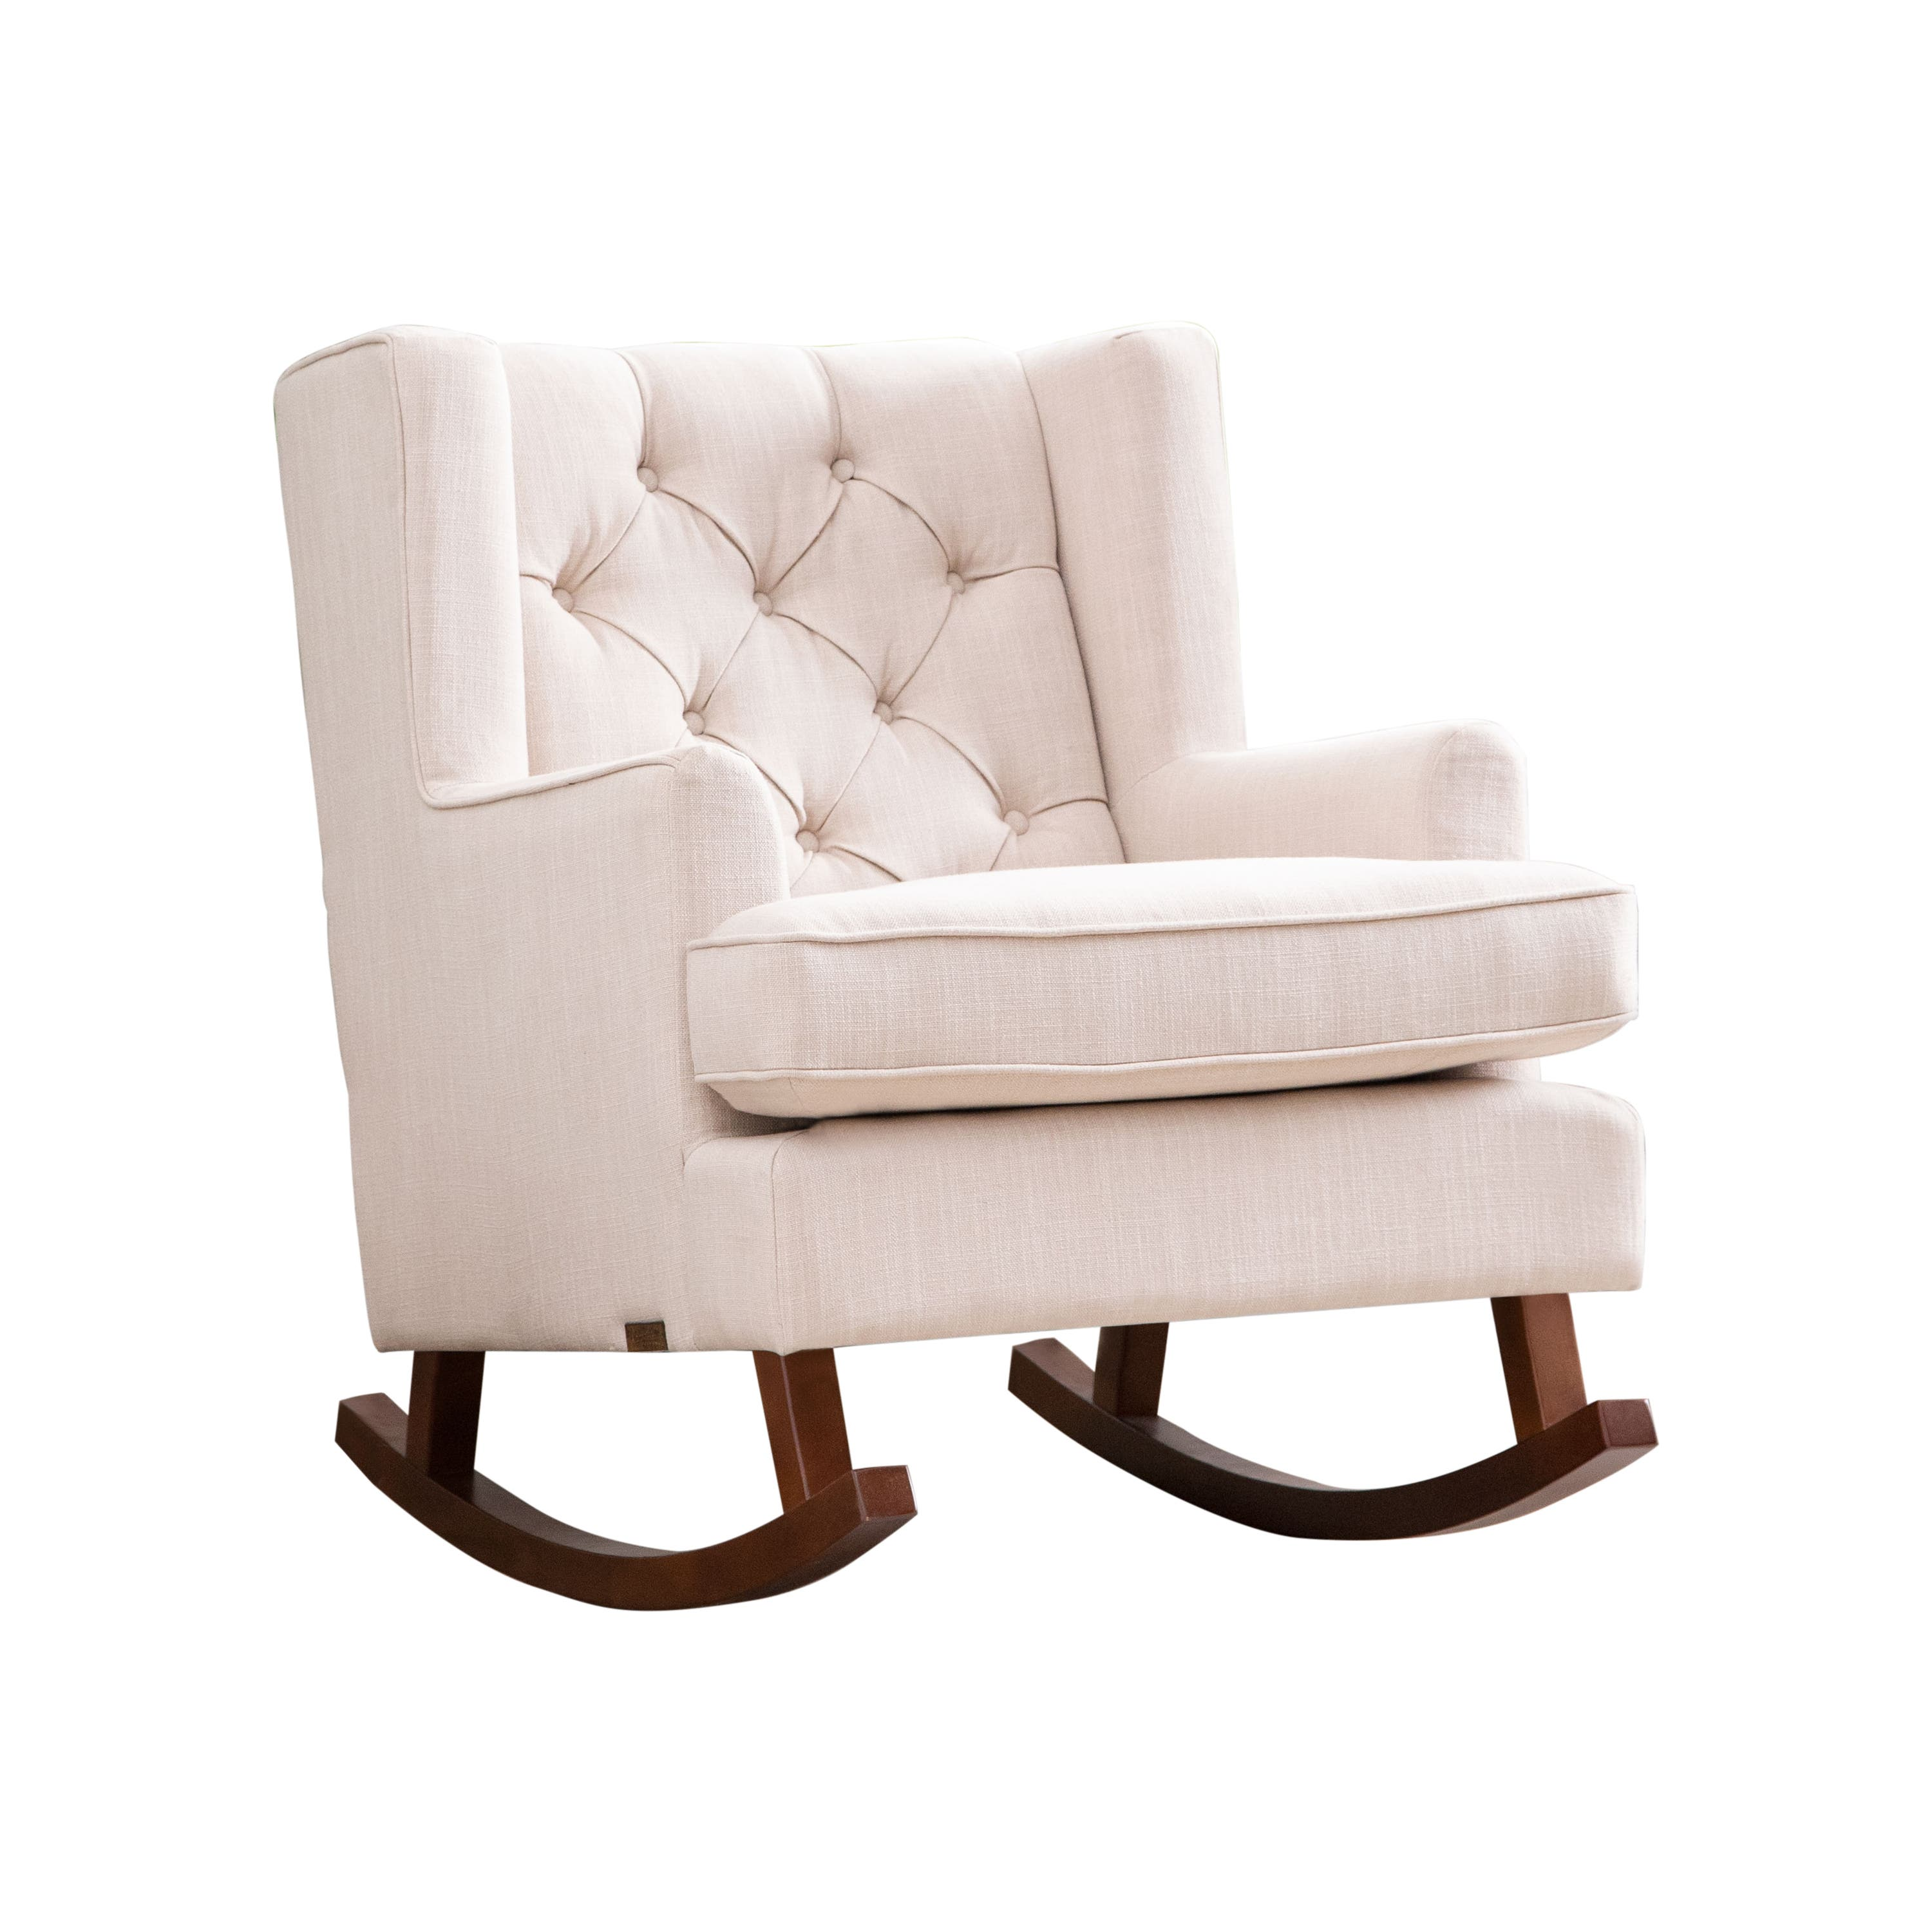 Best Place To Buy Living Room Furniture: Buy Living Room Chairs Online At Overstock.com